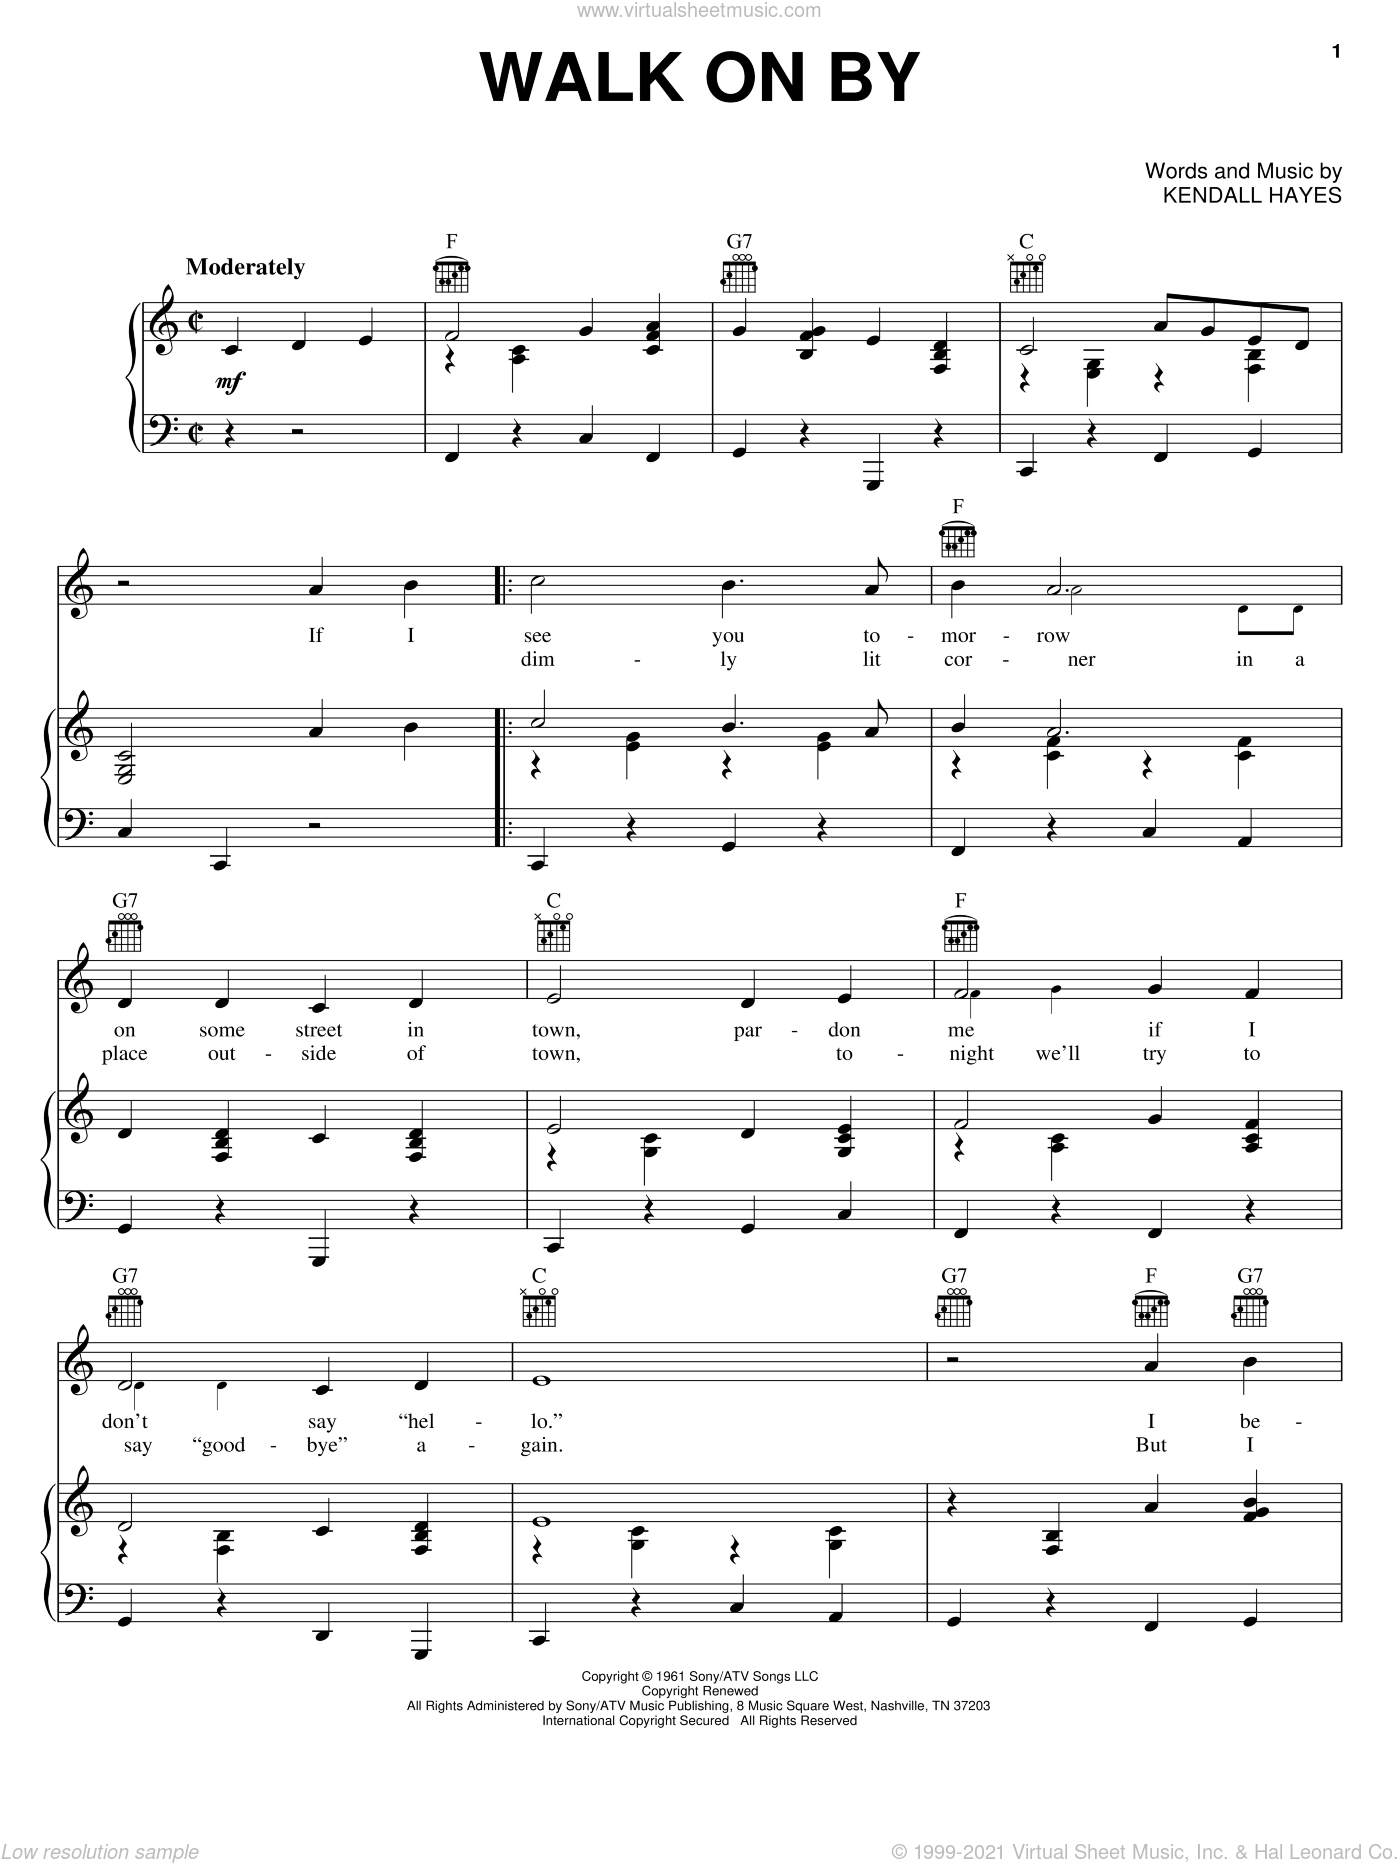 Walk On By sheet music for voice, piano or guitar by Leroy Van Dyke, Asleep At The Wheel, Charley Pride and Kendall Hays, intermediate skill level